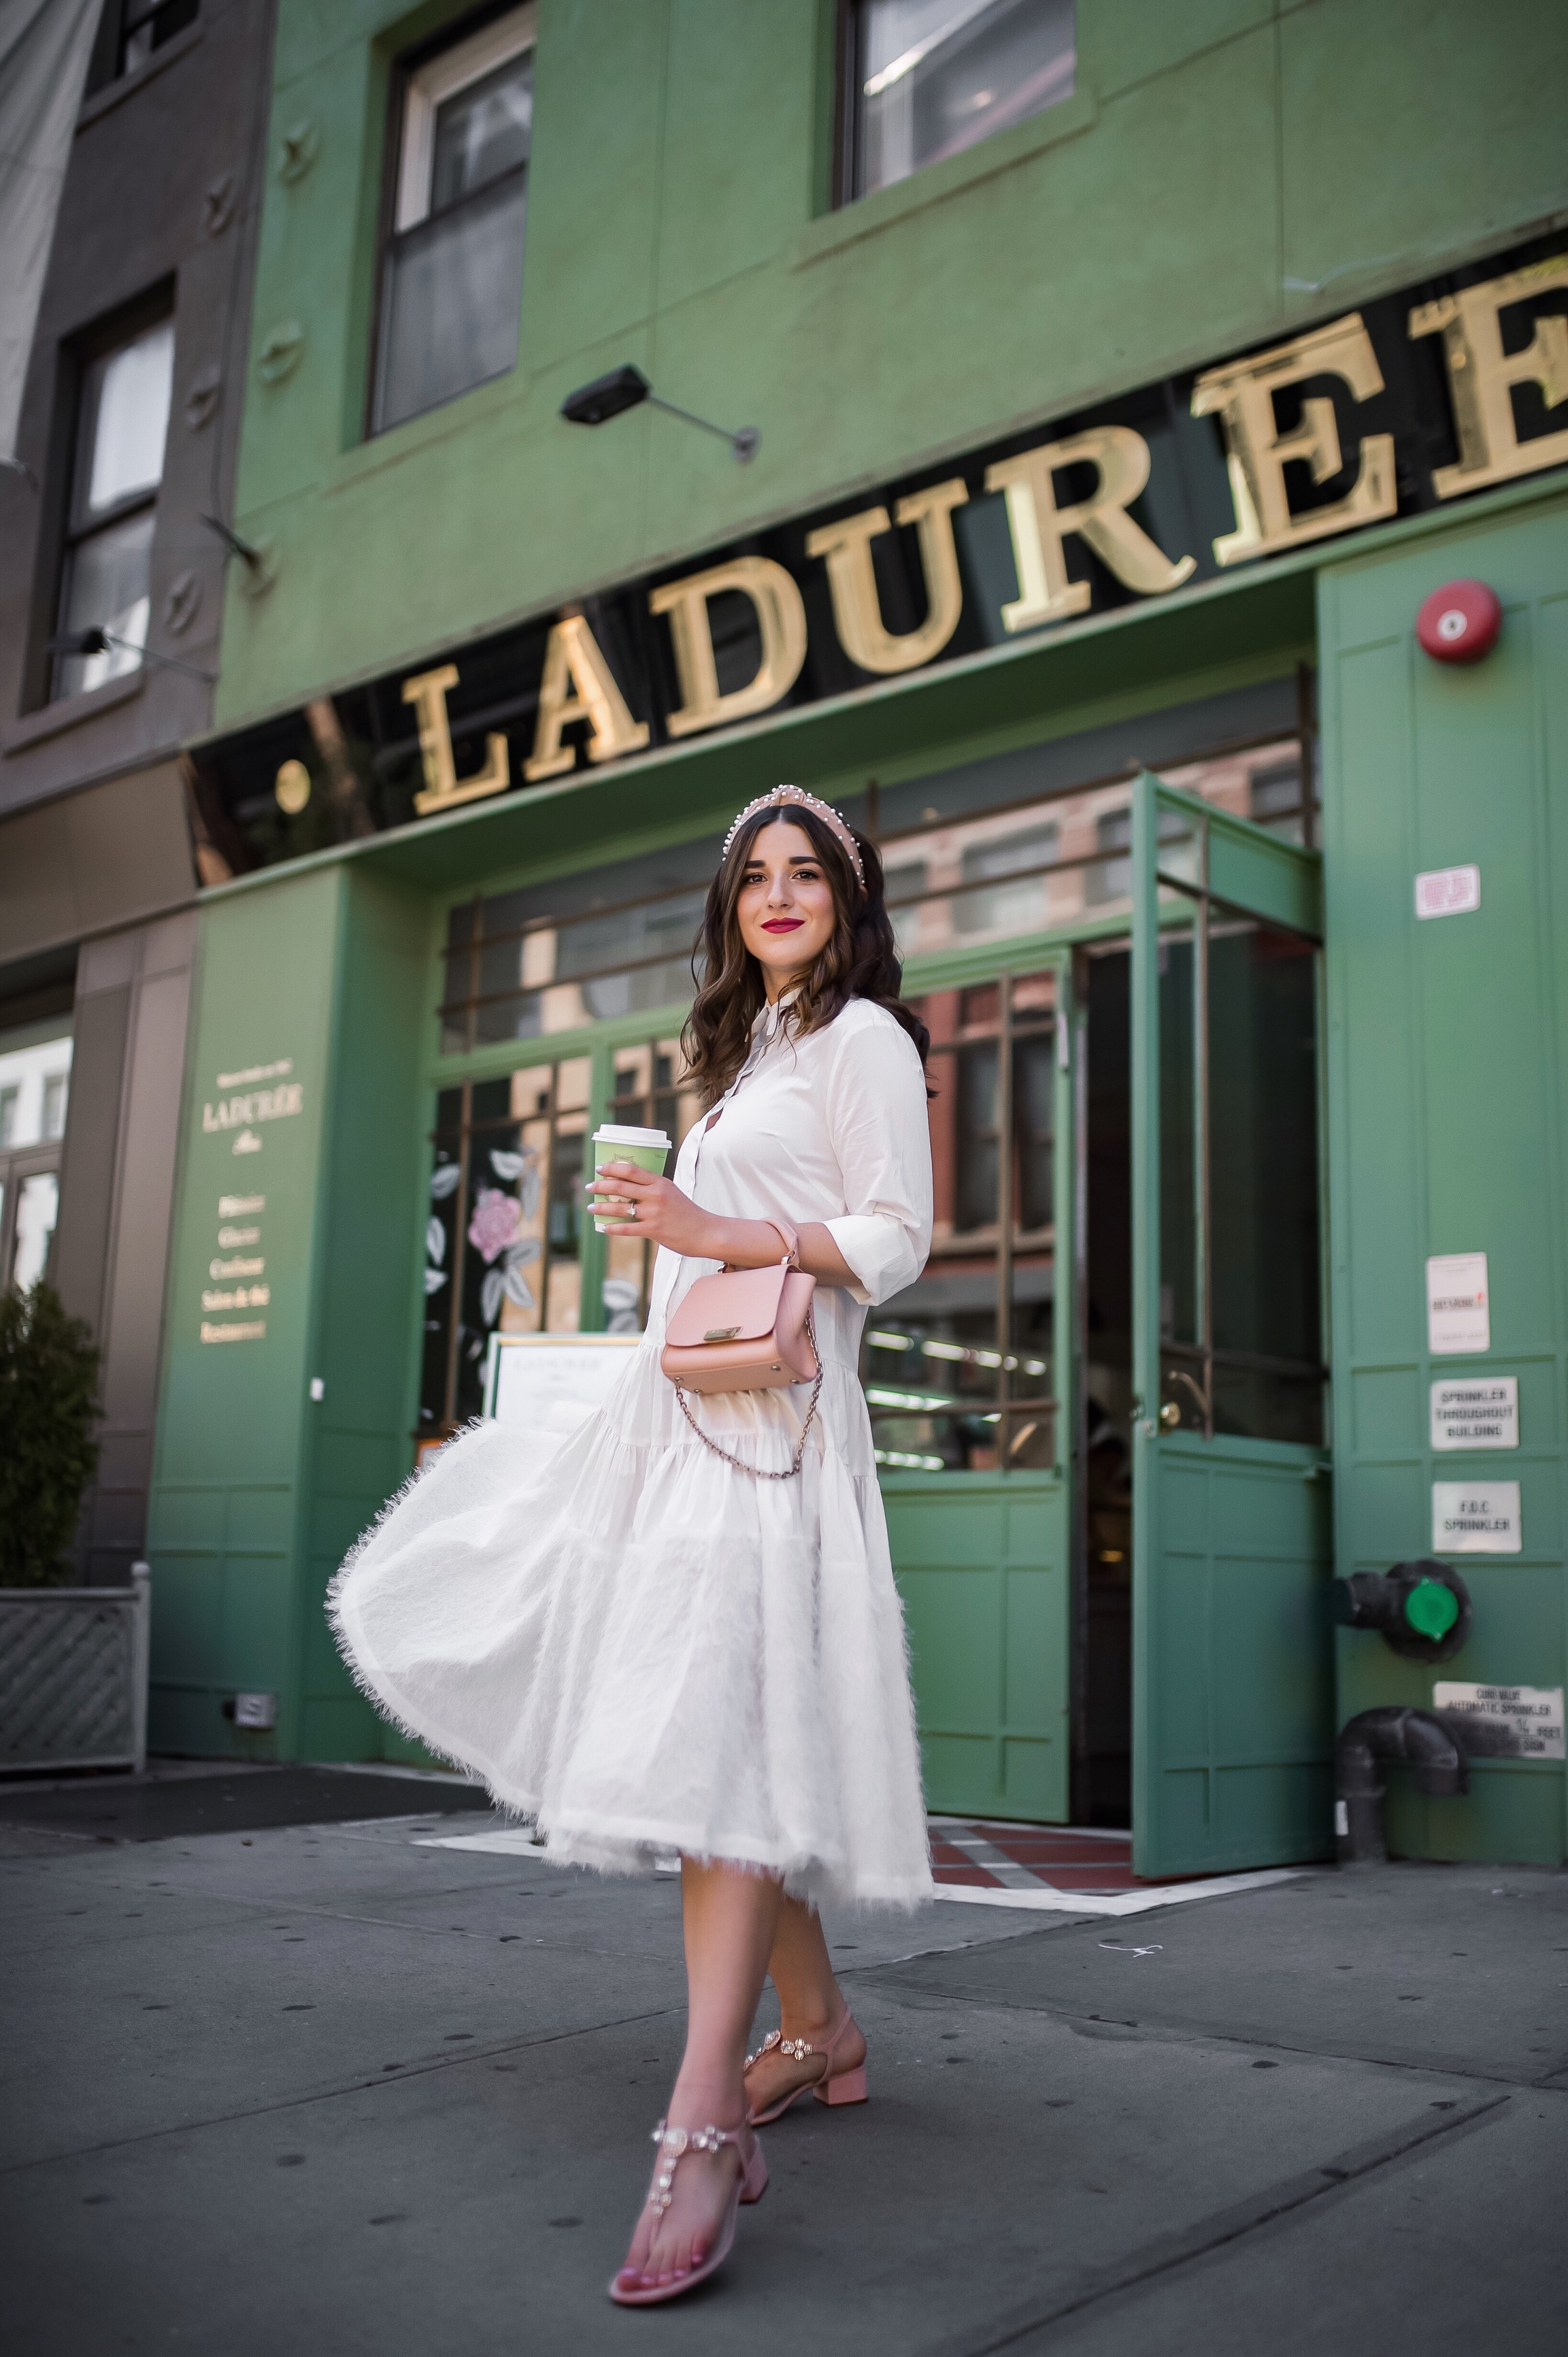 Debunking 8 Common Misconceptions About Fashion Bloggers White Midi Dress Pink Accessories Esther Santer Fashion Blog NYC Street Style Blogger Outfit OOTD Trendy Shopping Girl Headband How To Wear Pink Zac Posen Bag Sandals Jeweled Photoshoot La Duree.JPG